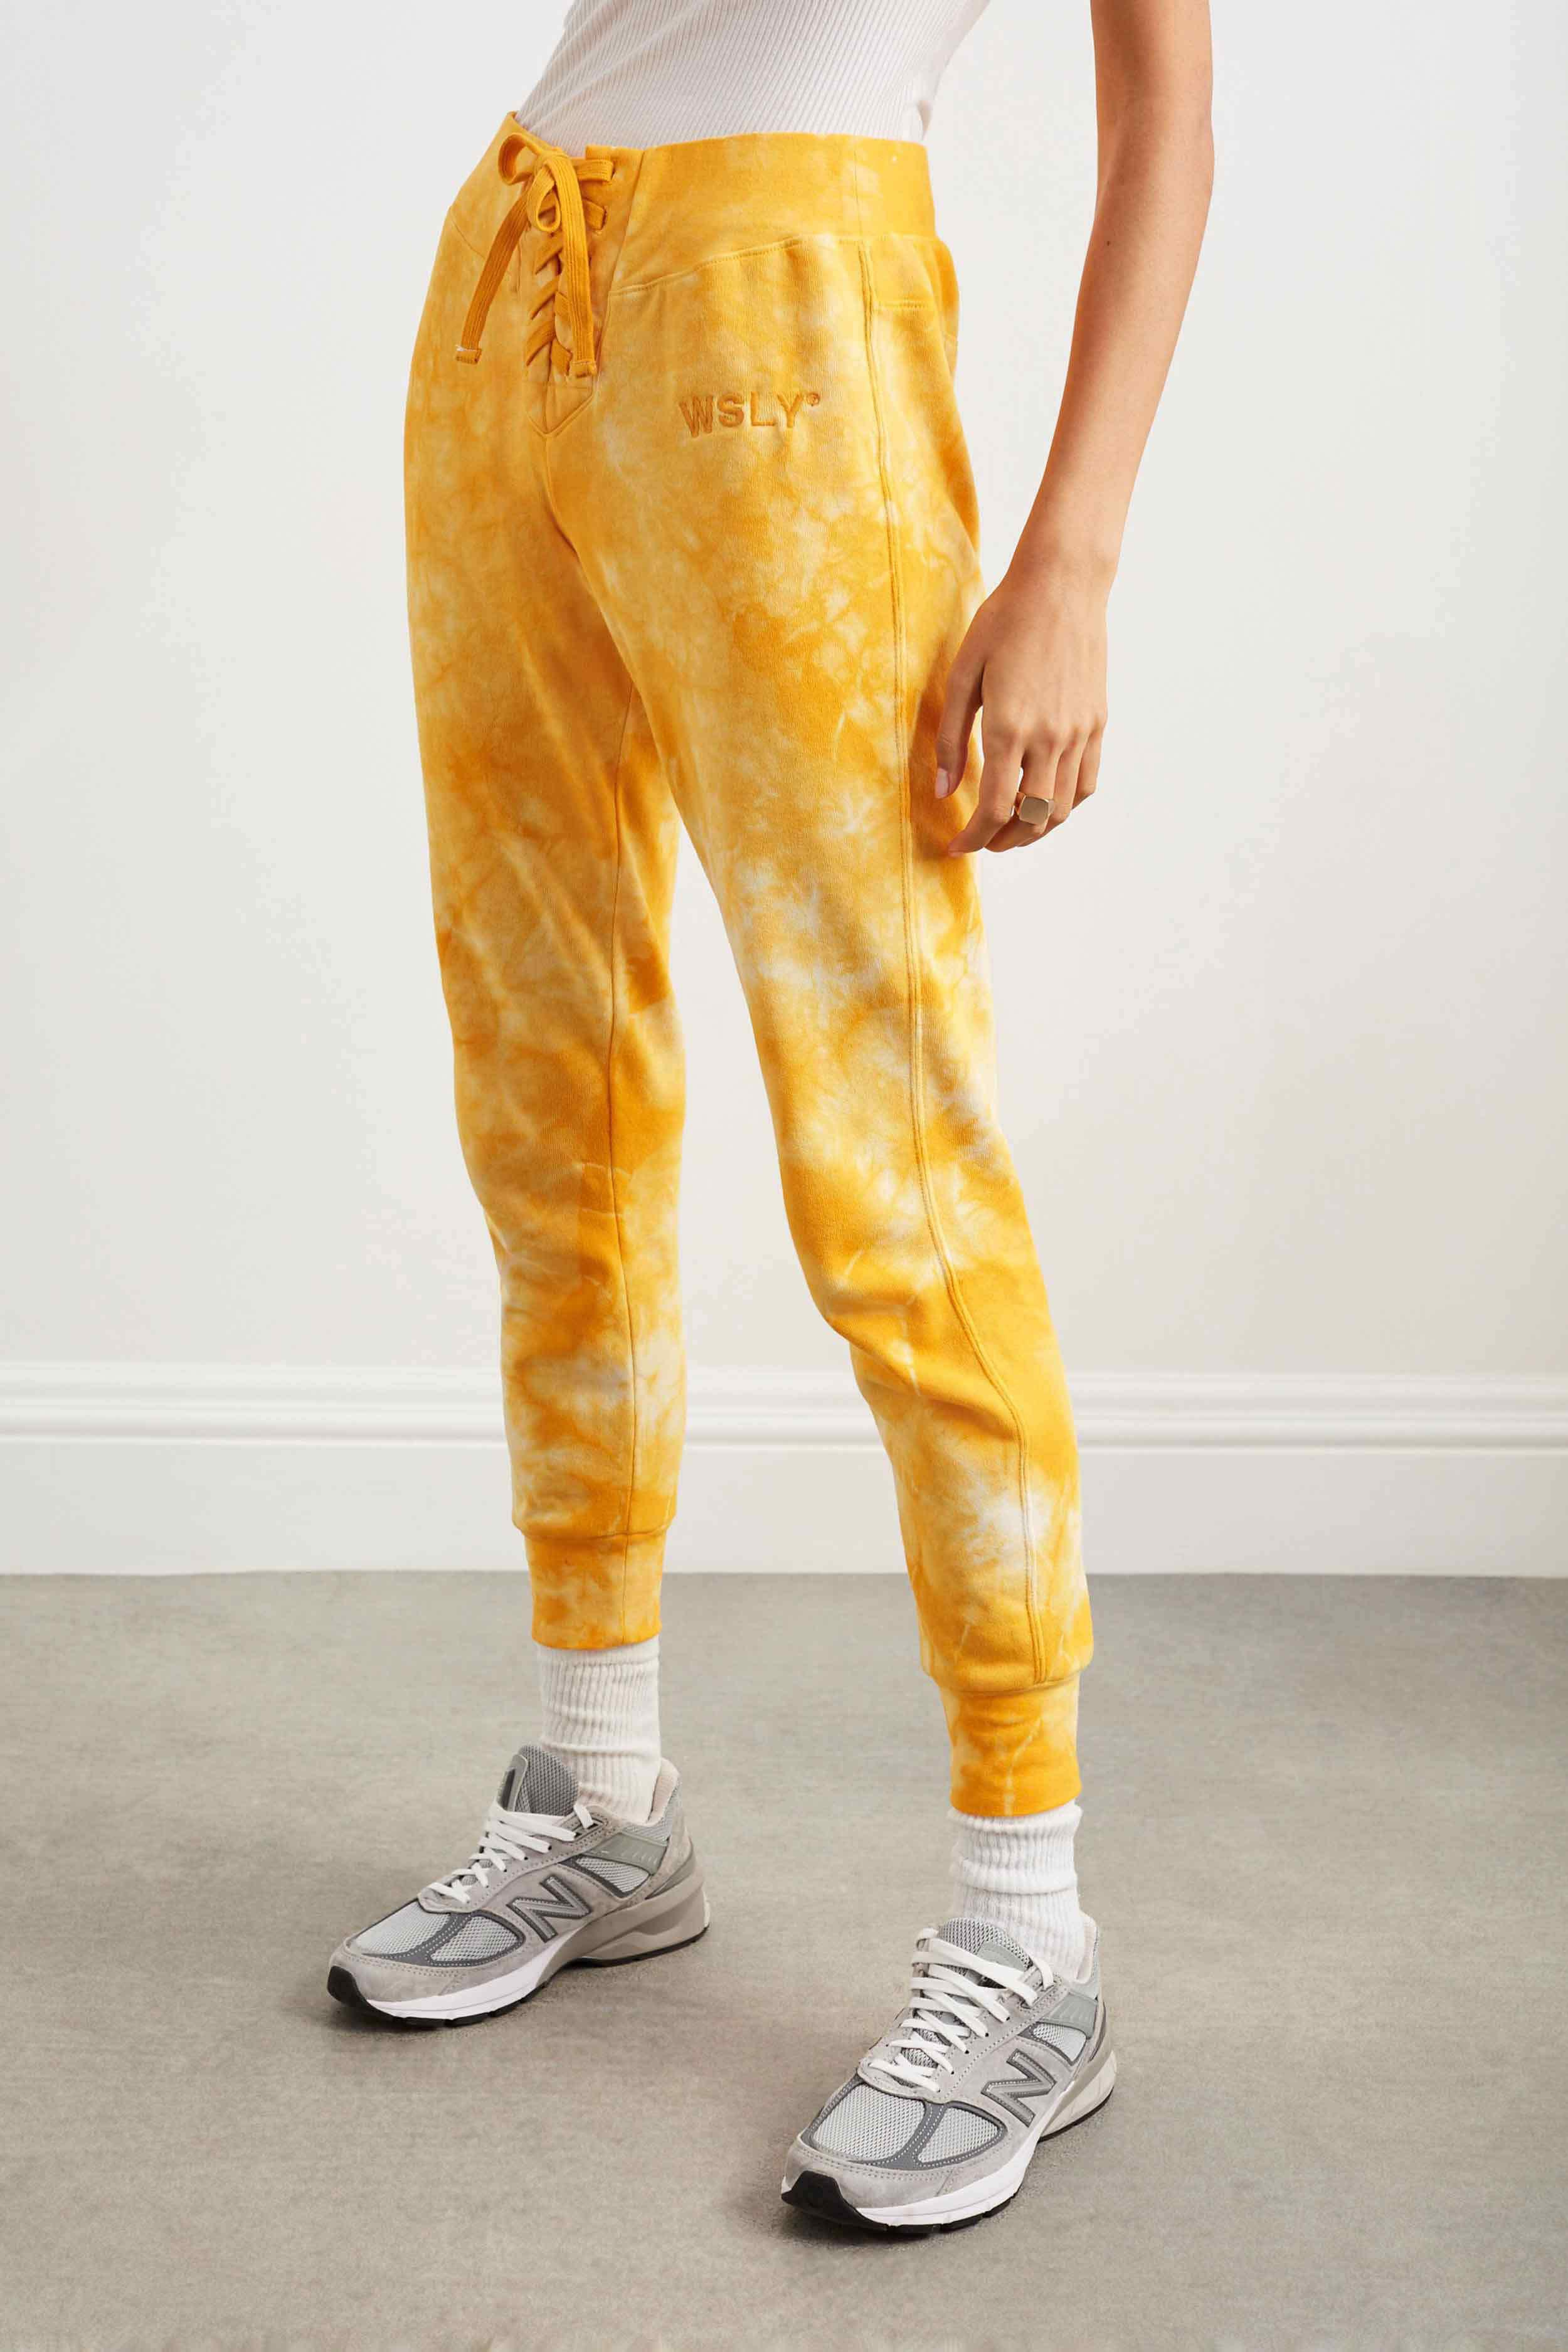 The Ecosoft Tie Up Jogger 3